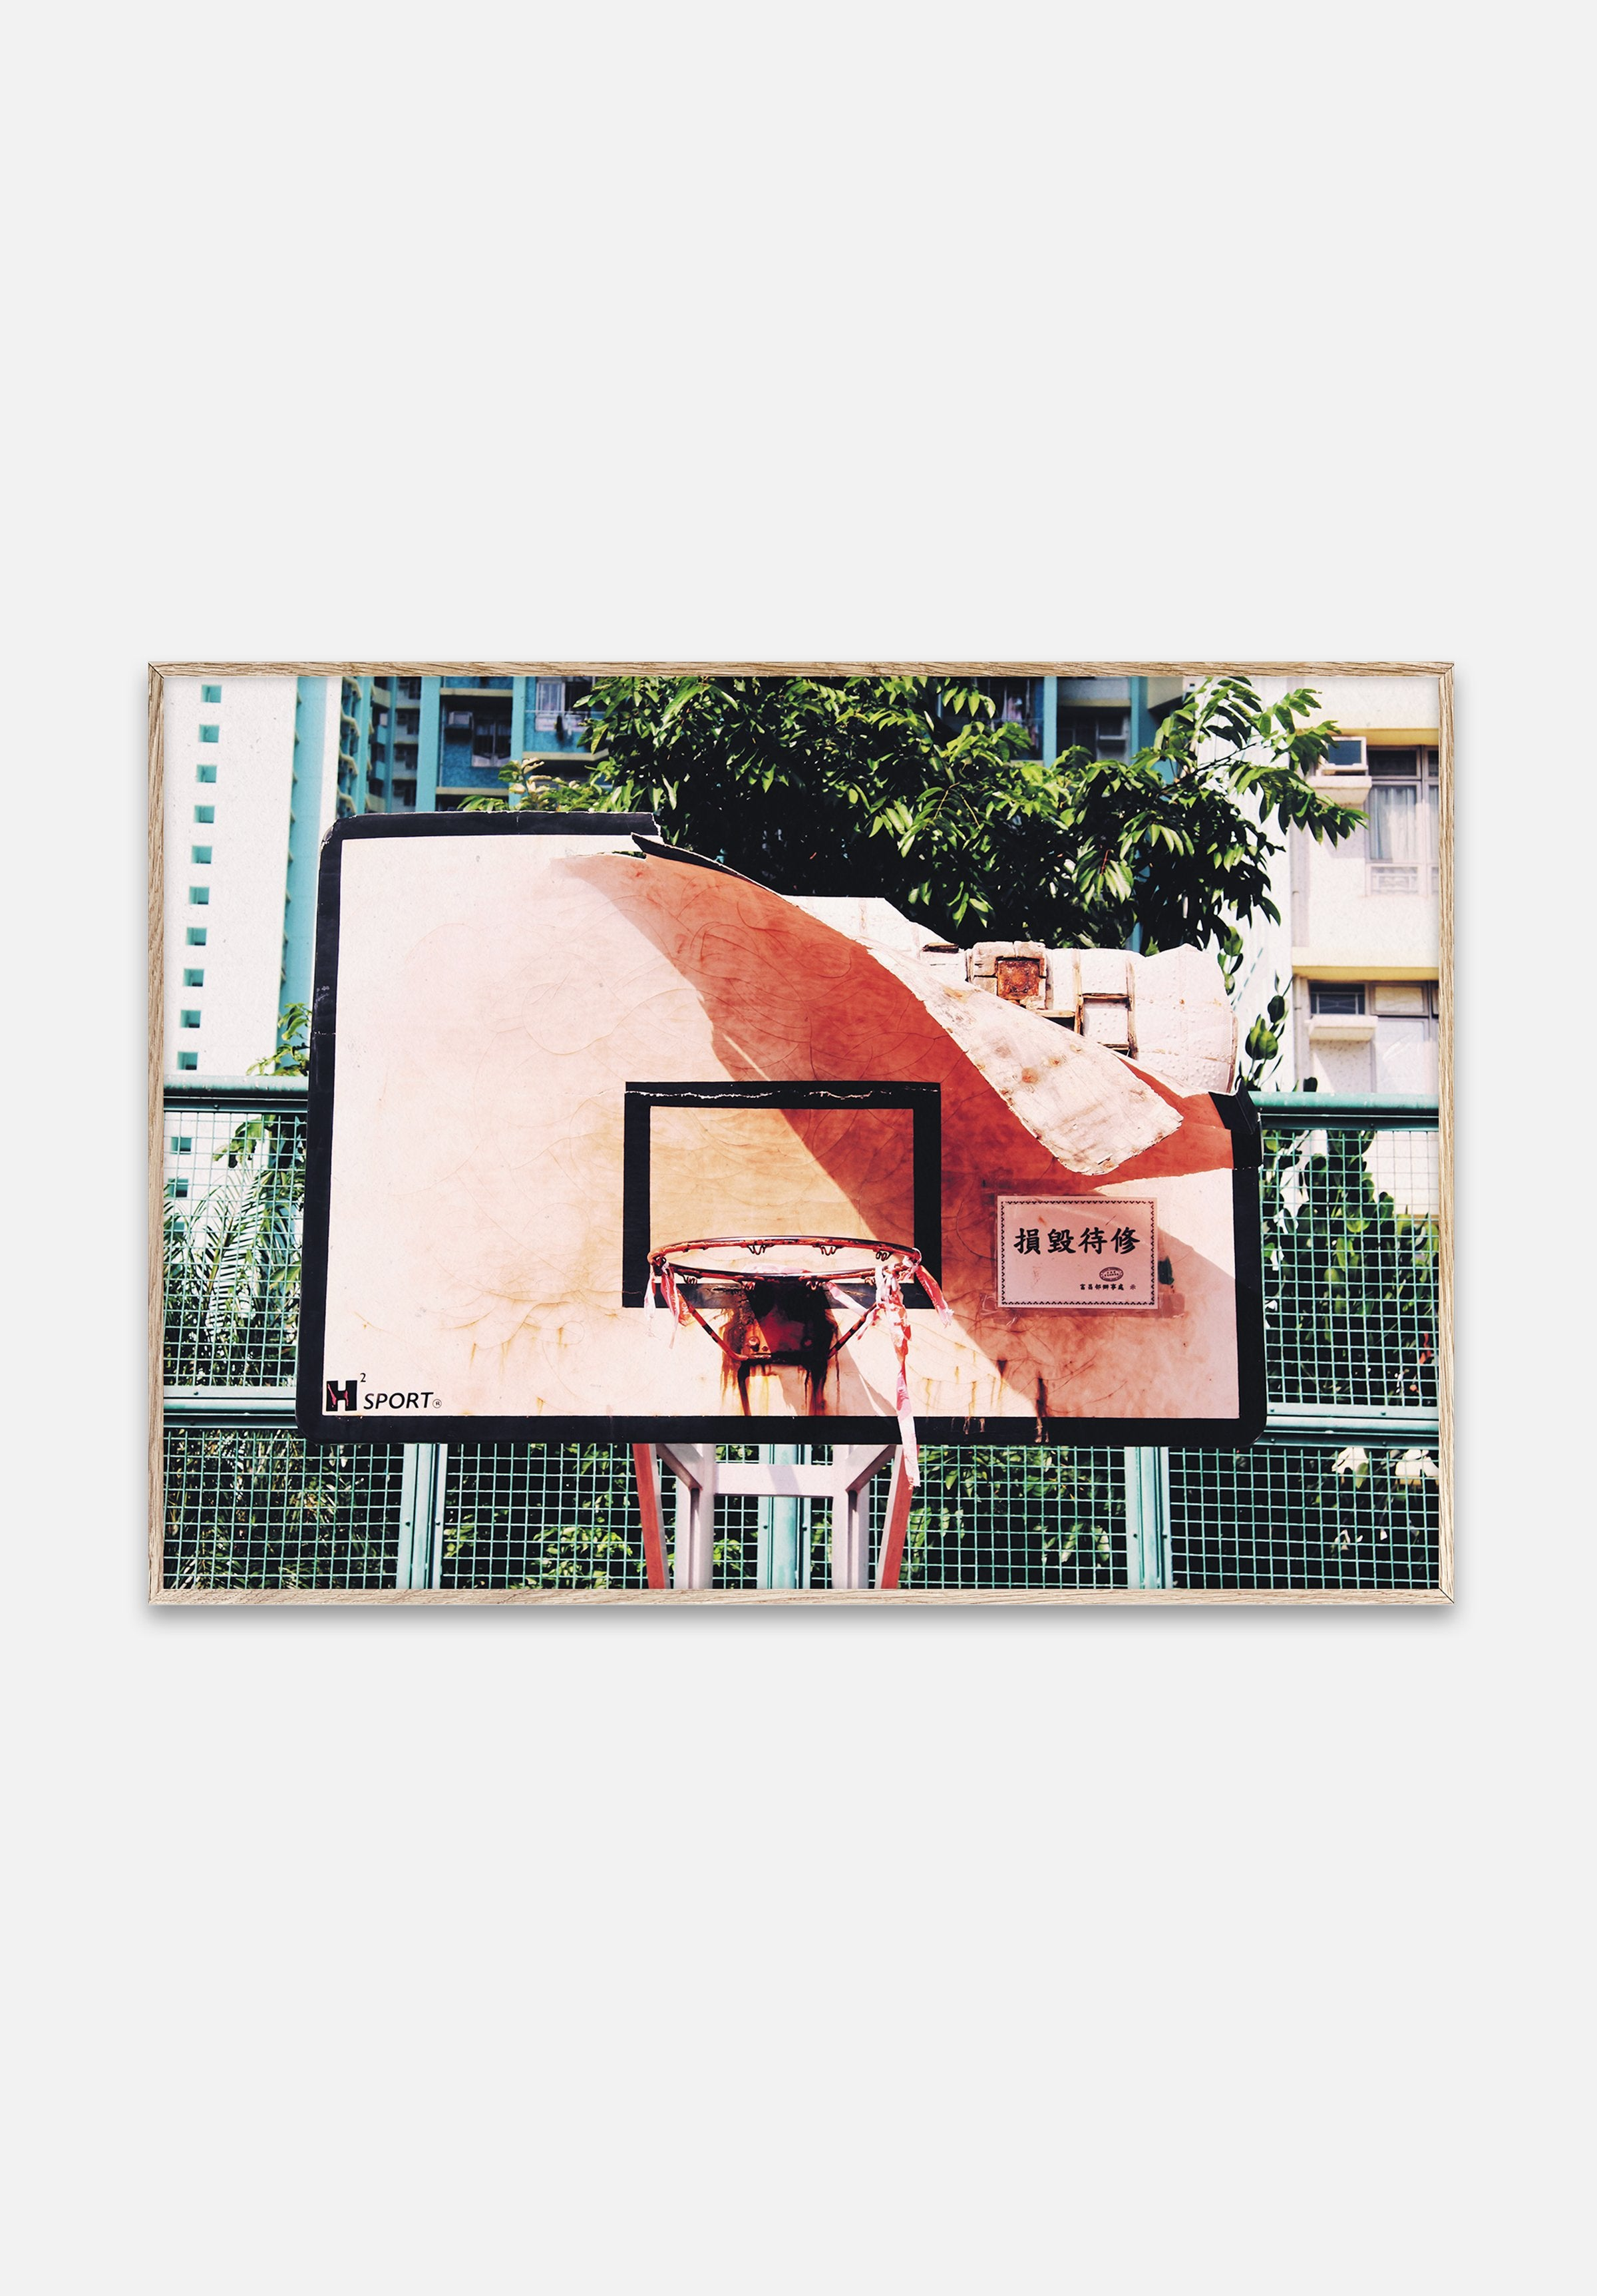 Cities Of Basketball 06 — Hong Kong